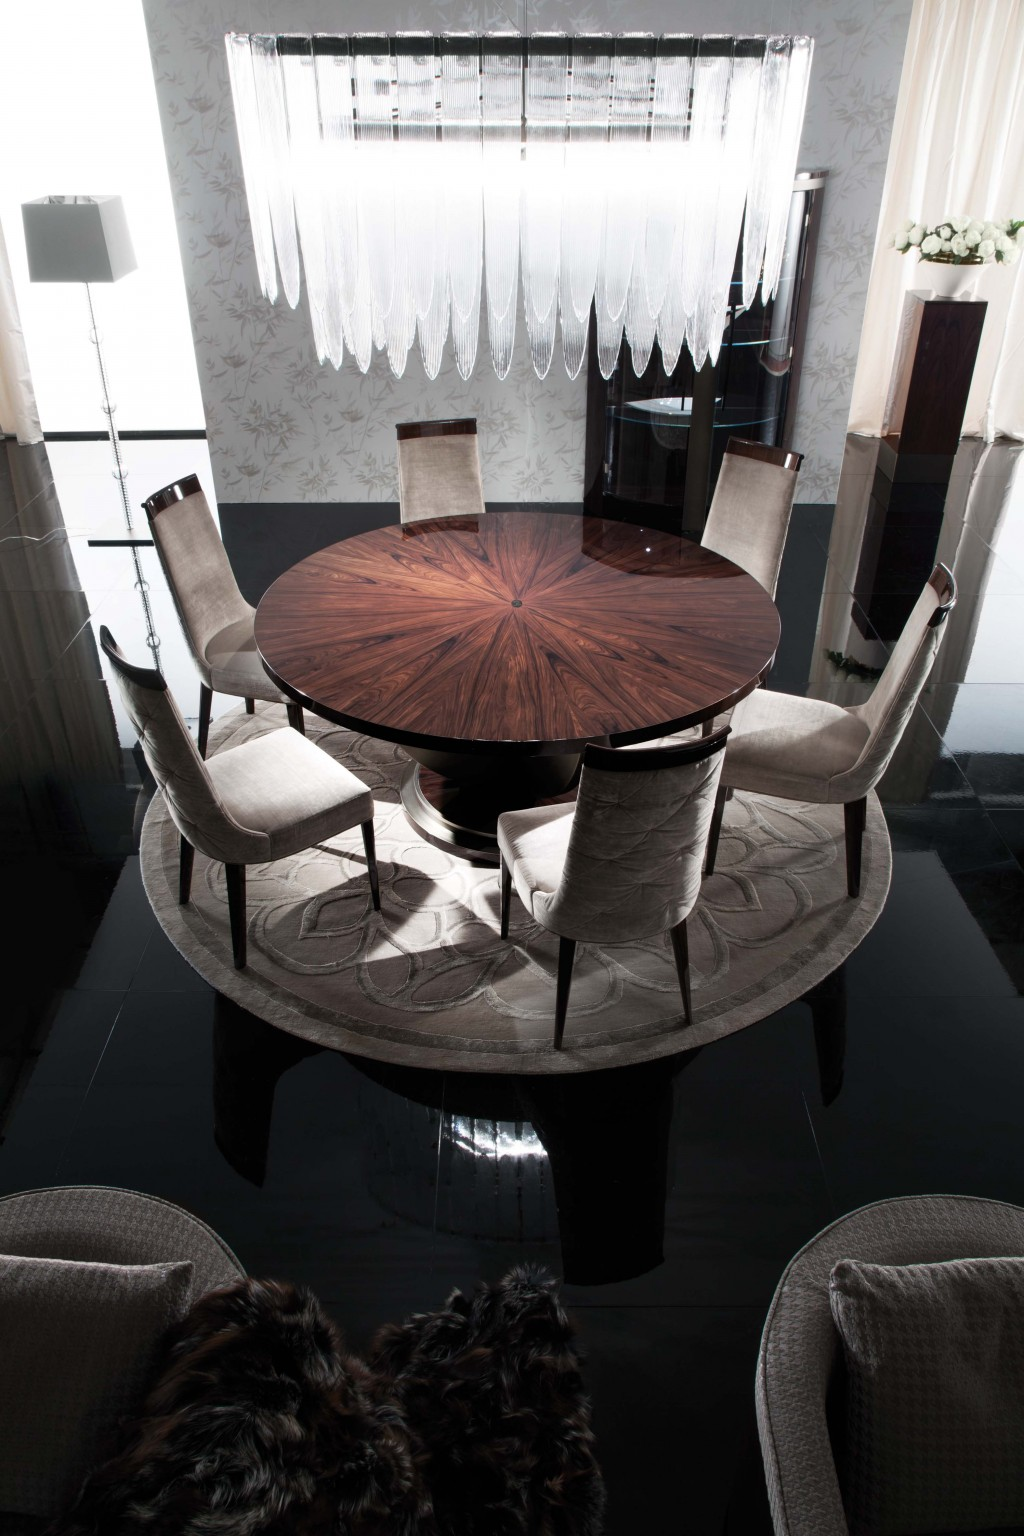 Giorgio Coliseum Round Dining Table